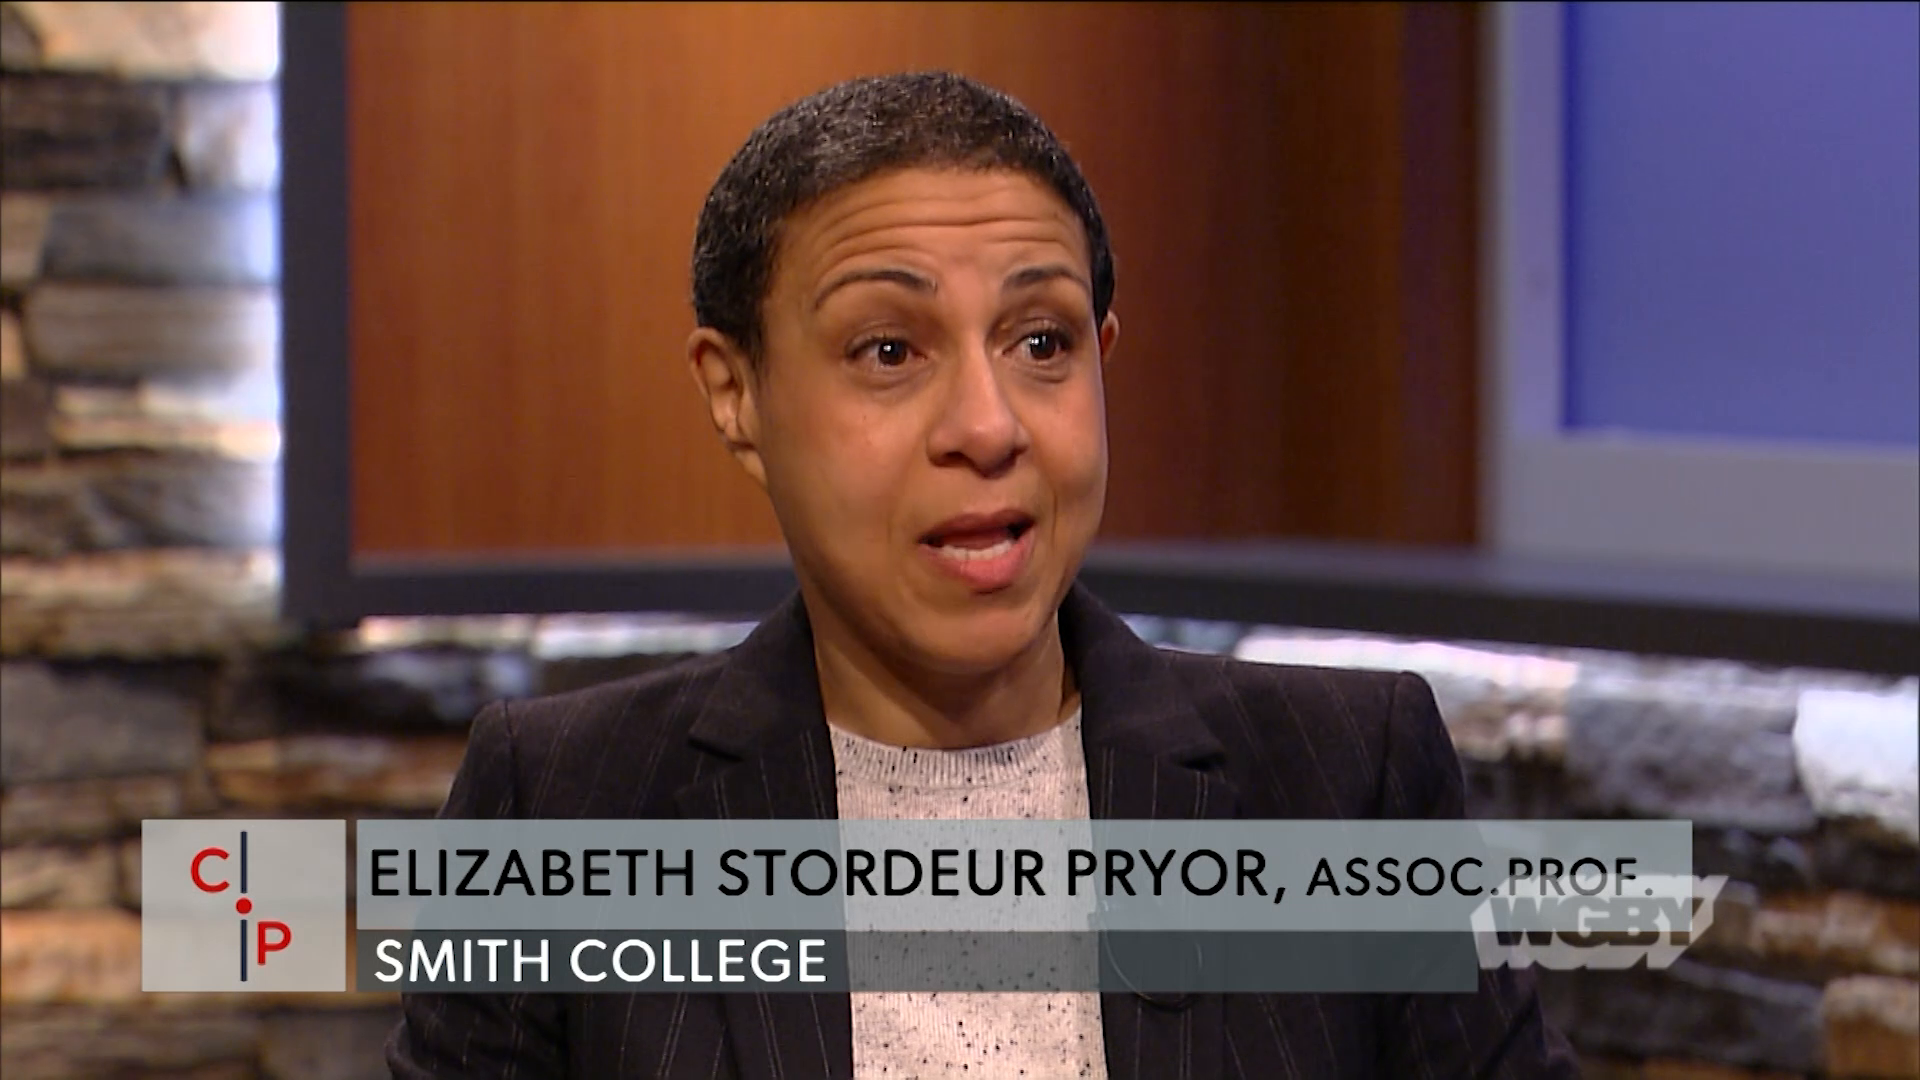 Smith College History Professor Elizabeth Stordeur Pryor discusses the history and modern day implications of blackface and minstrel performances.